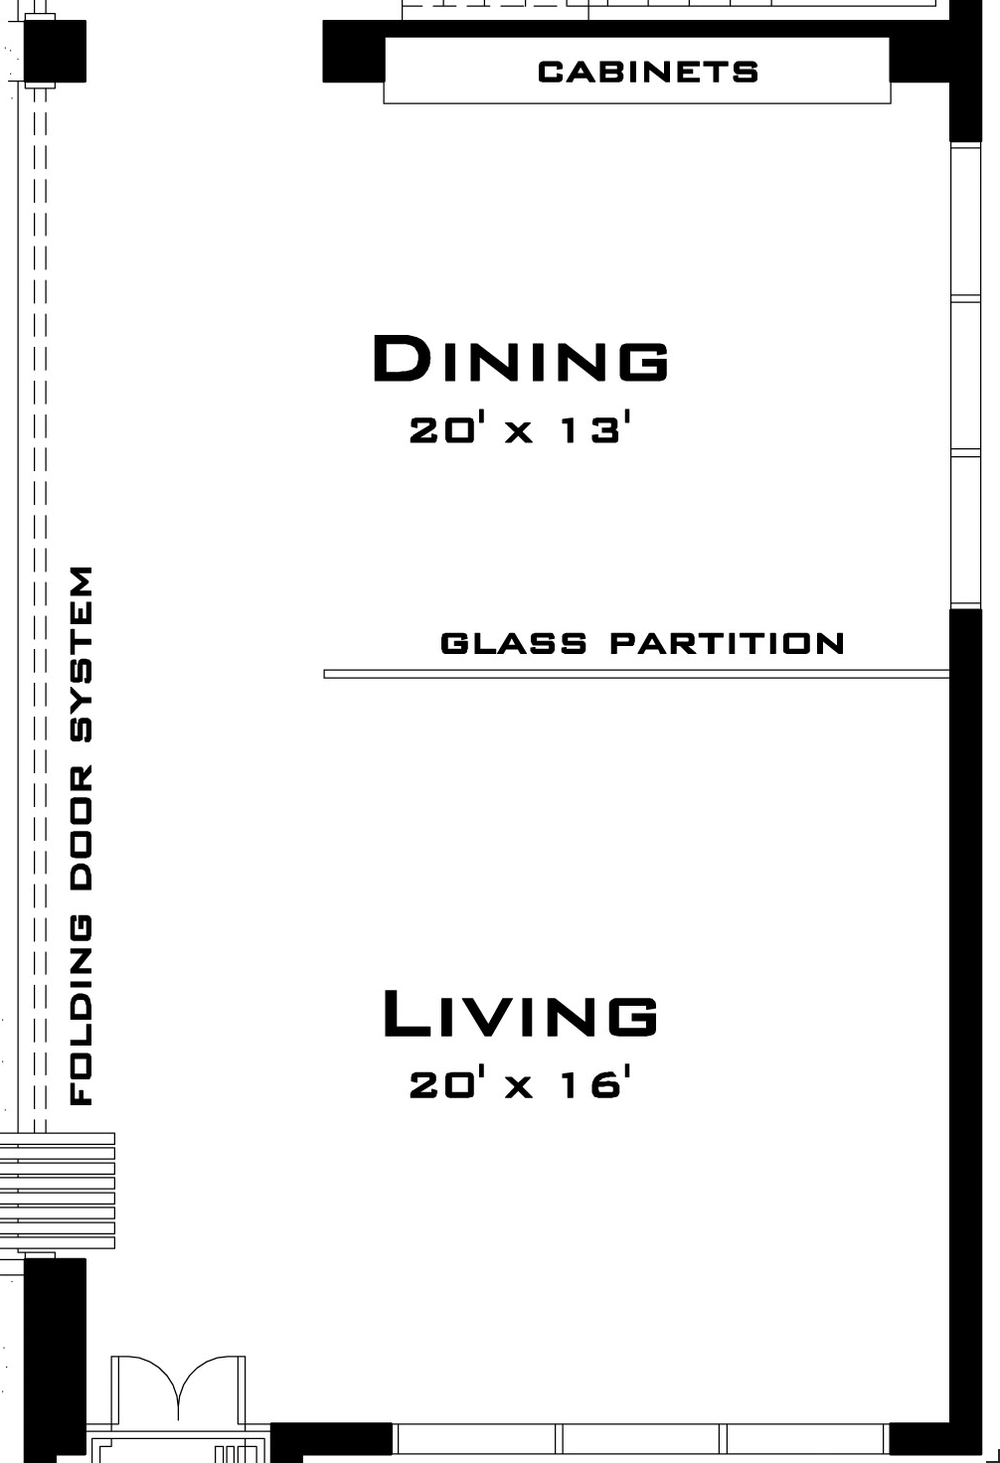 Living Dining.png